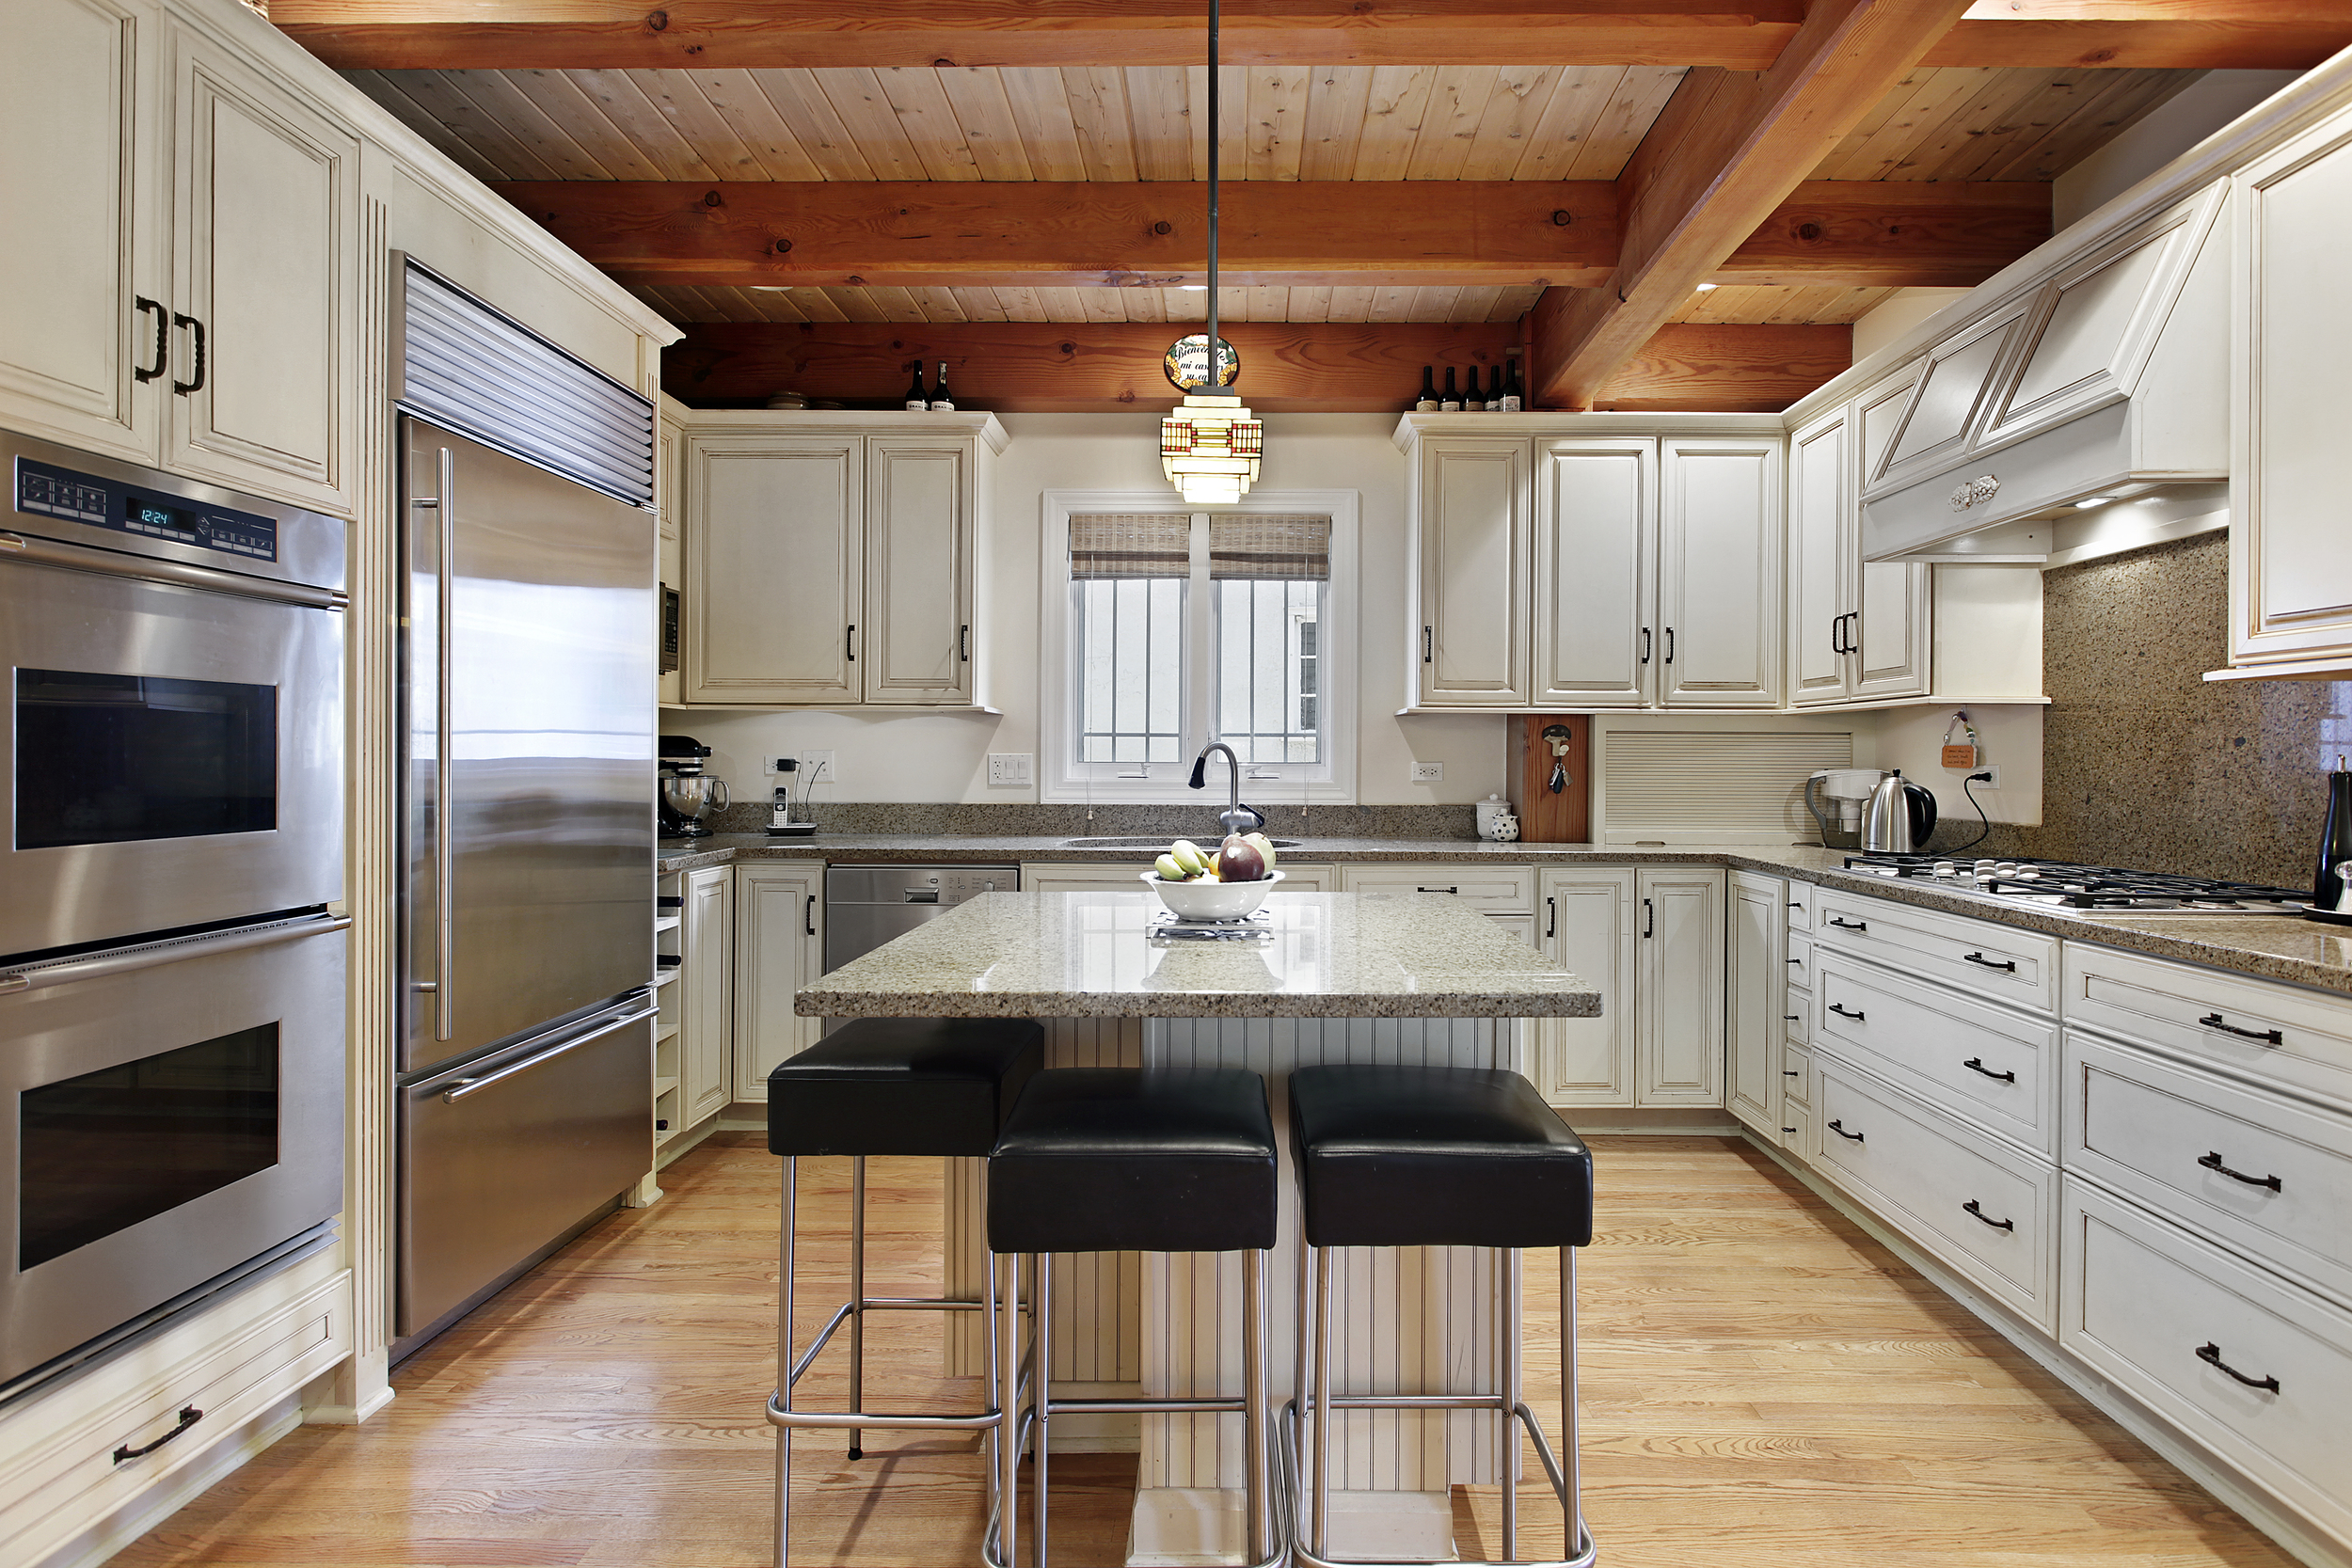 Kitchen-White+Wood-Country+Modern-shutterstock_47444167.jpg